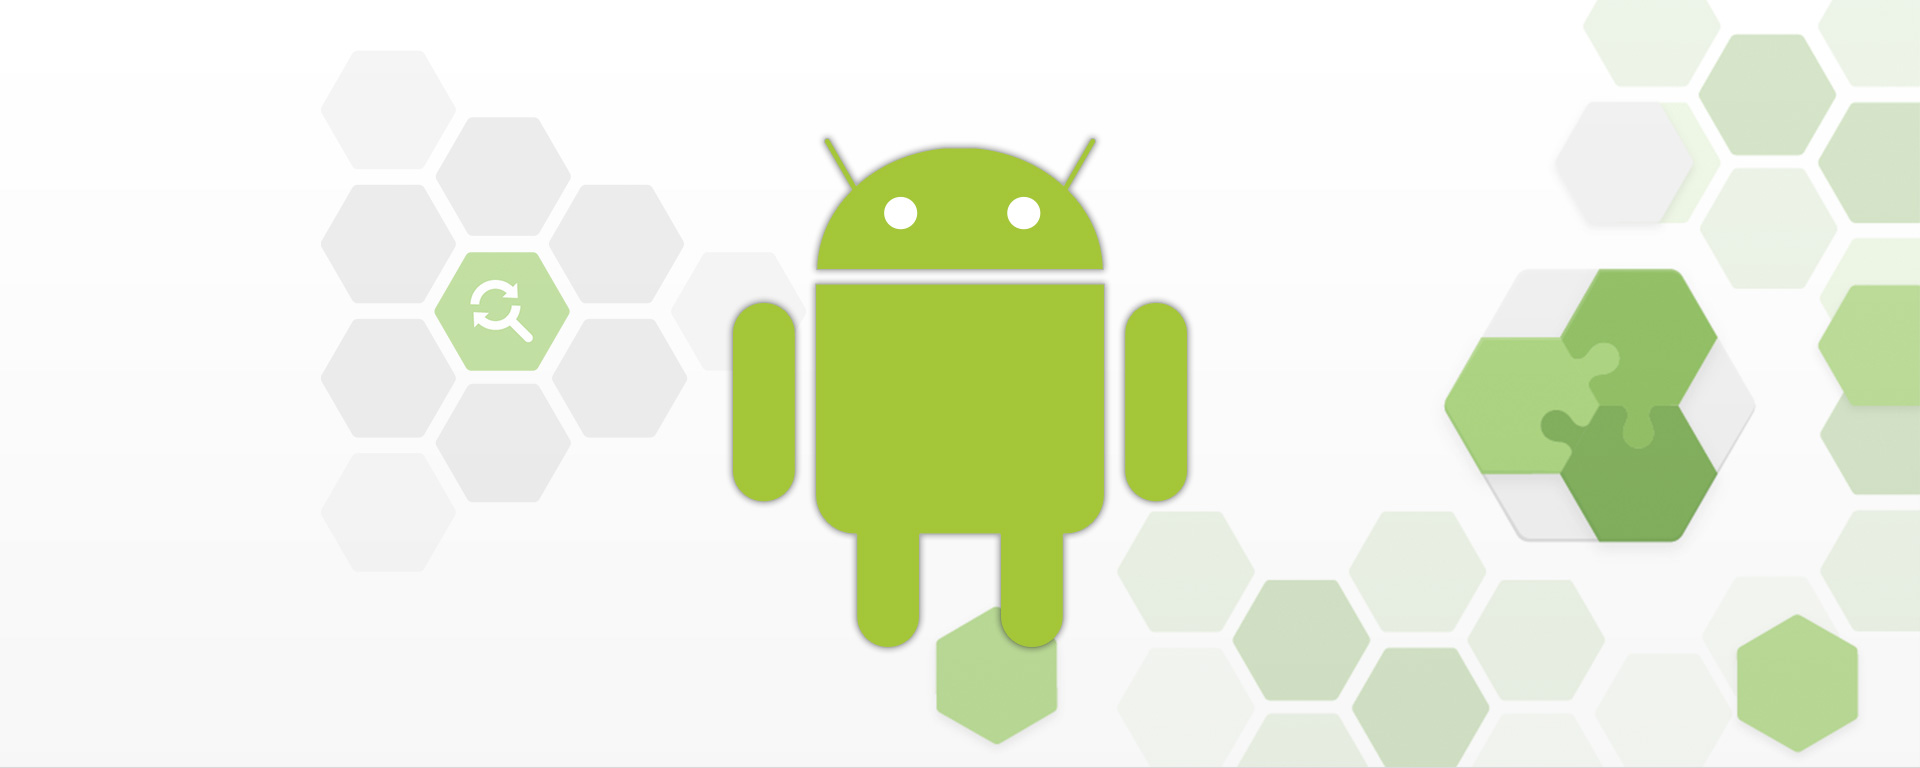 [Android Architecture Components] - Room 詳解